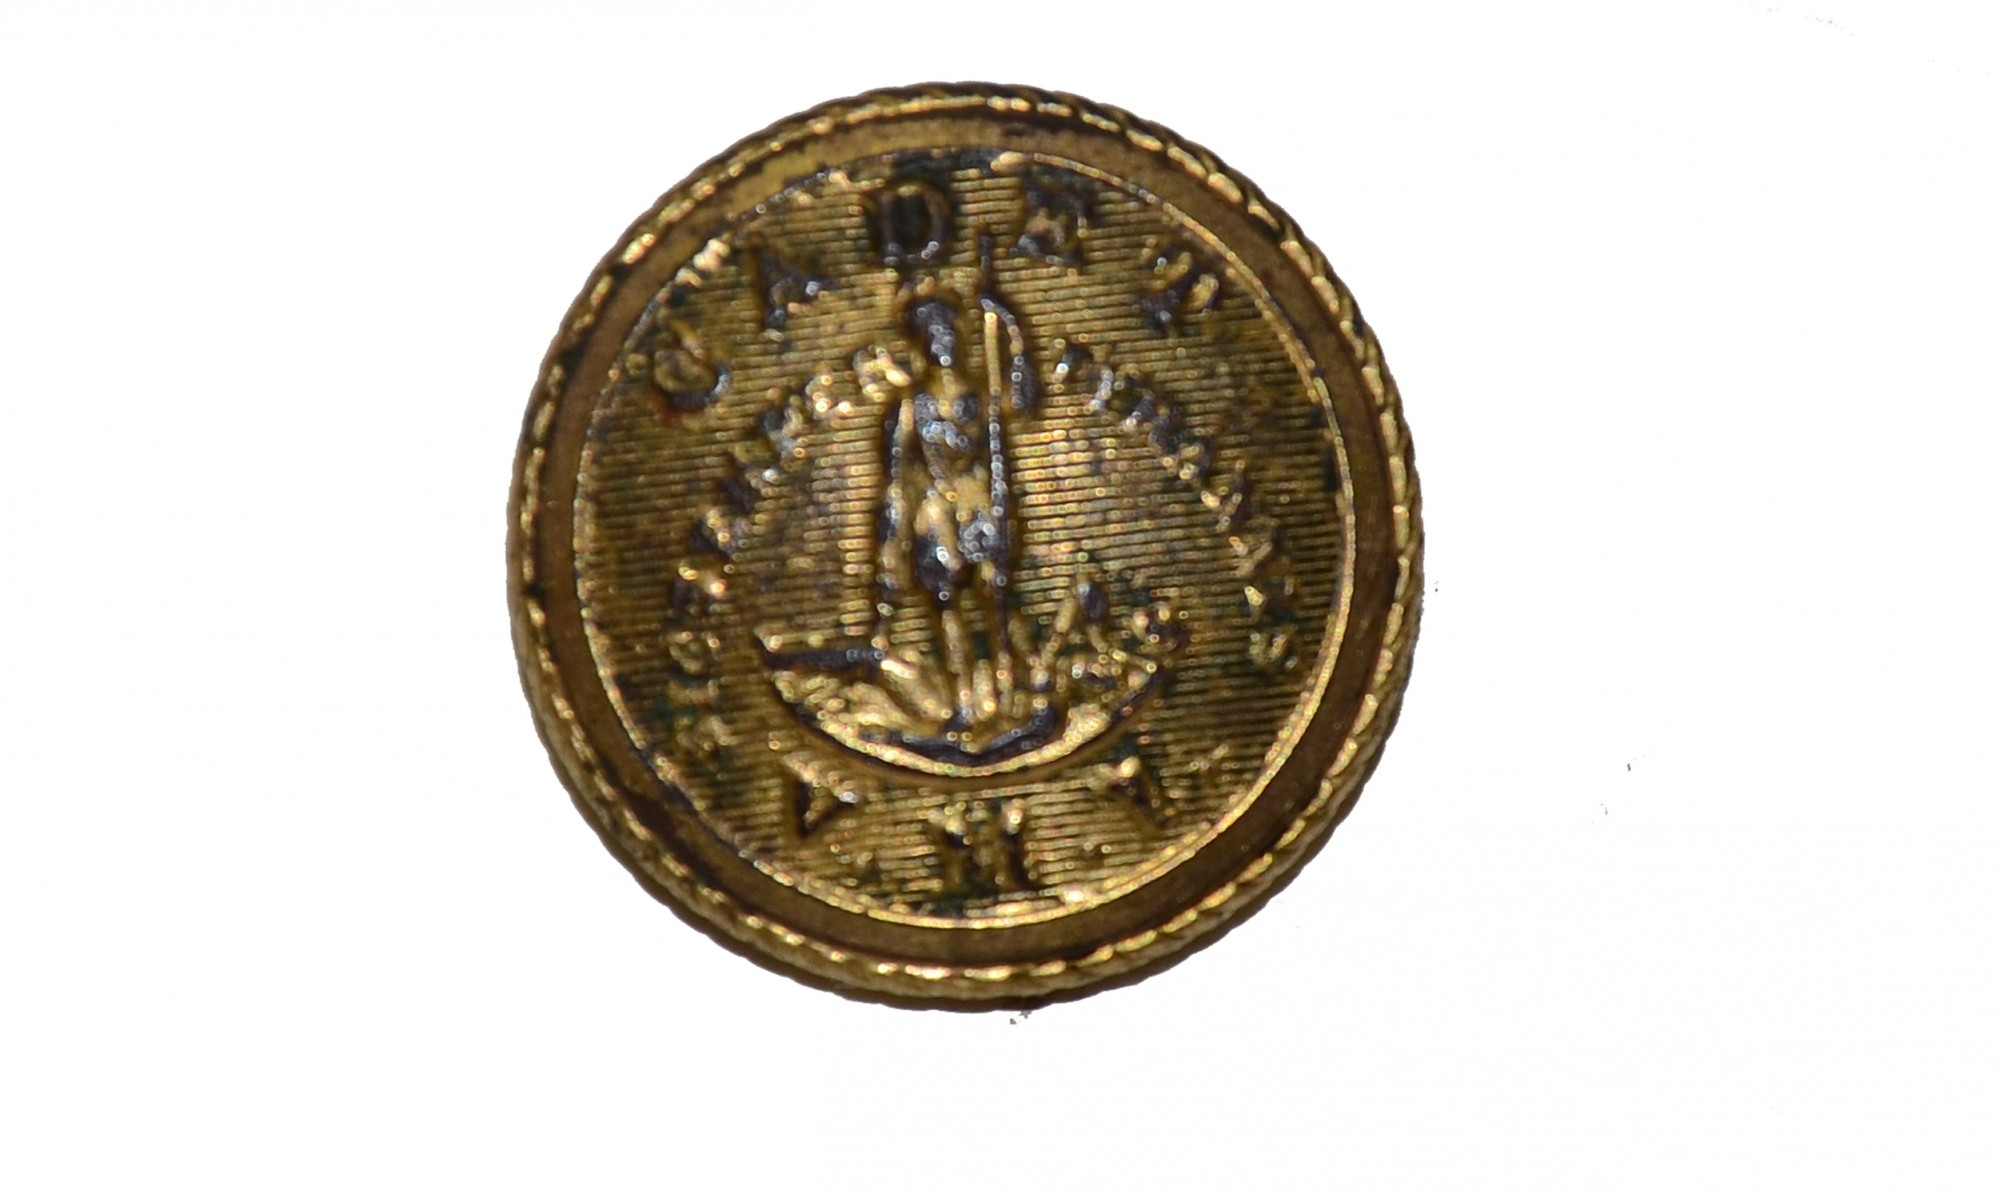 DUG CADET VMI COAT BUTTON